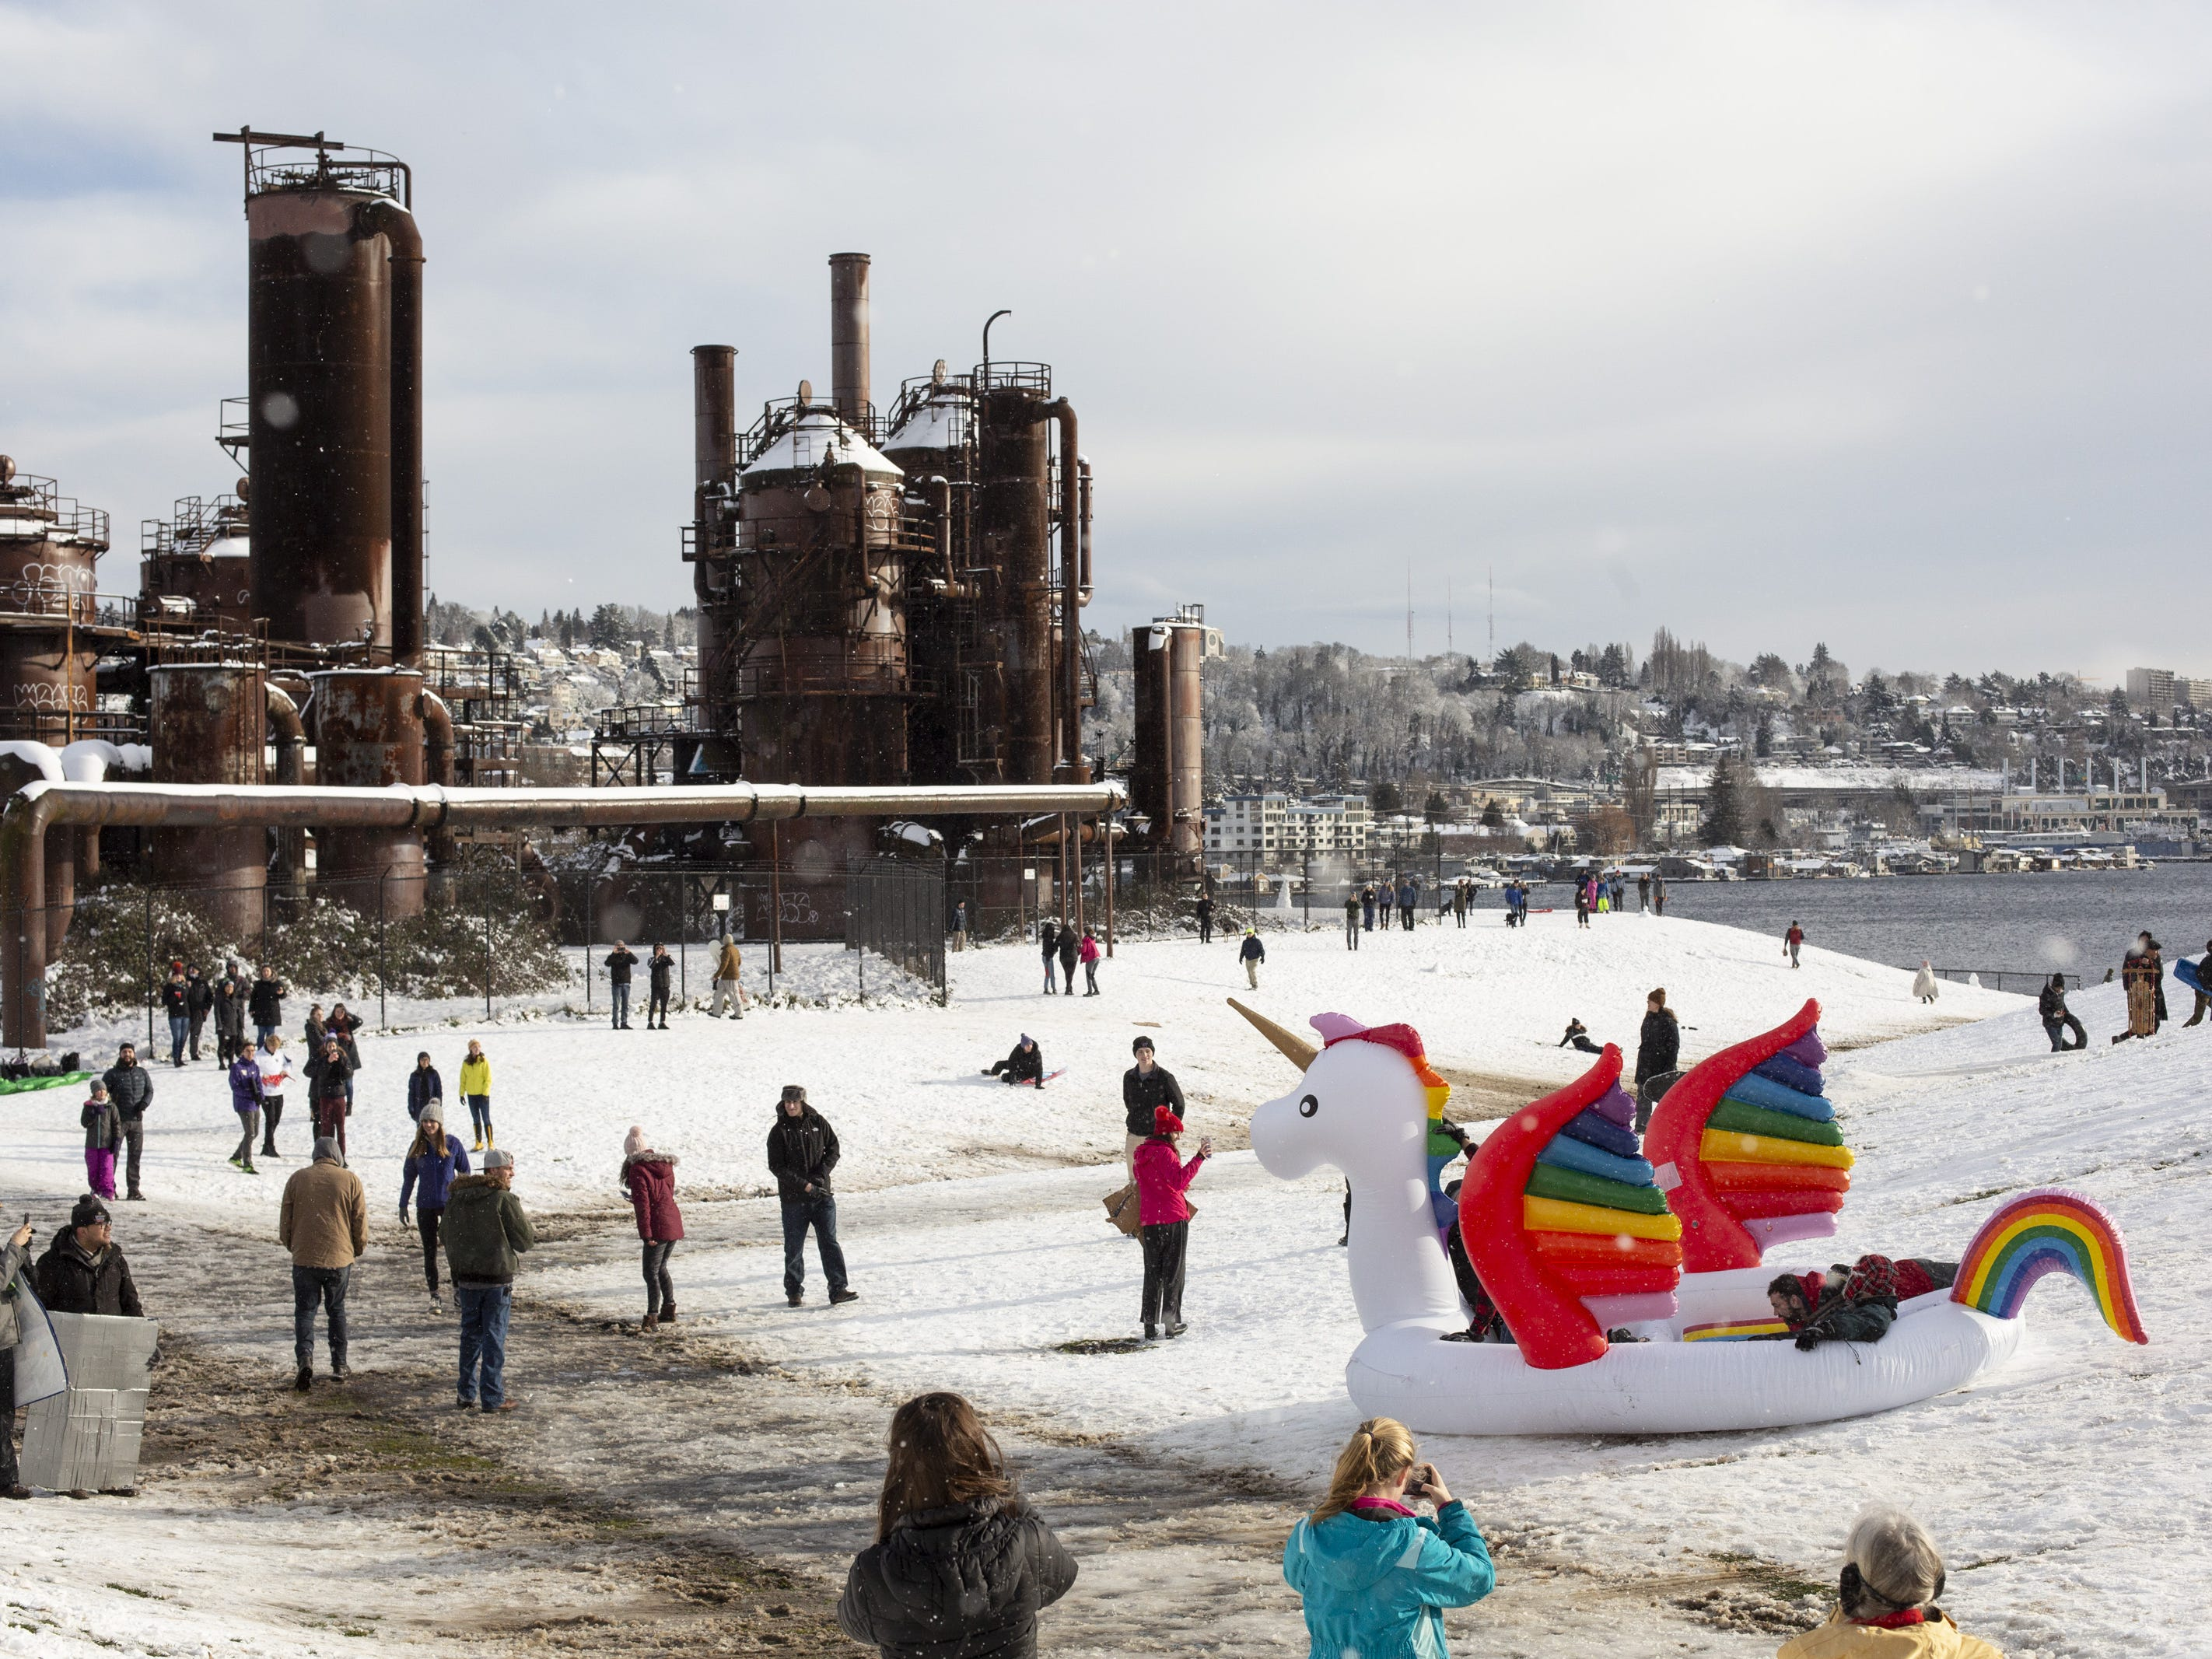 People play at Gas Works Park after a large storm blanketed the city with snow on February 9, 2019 in Seattle, Washington.